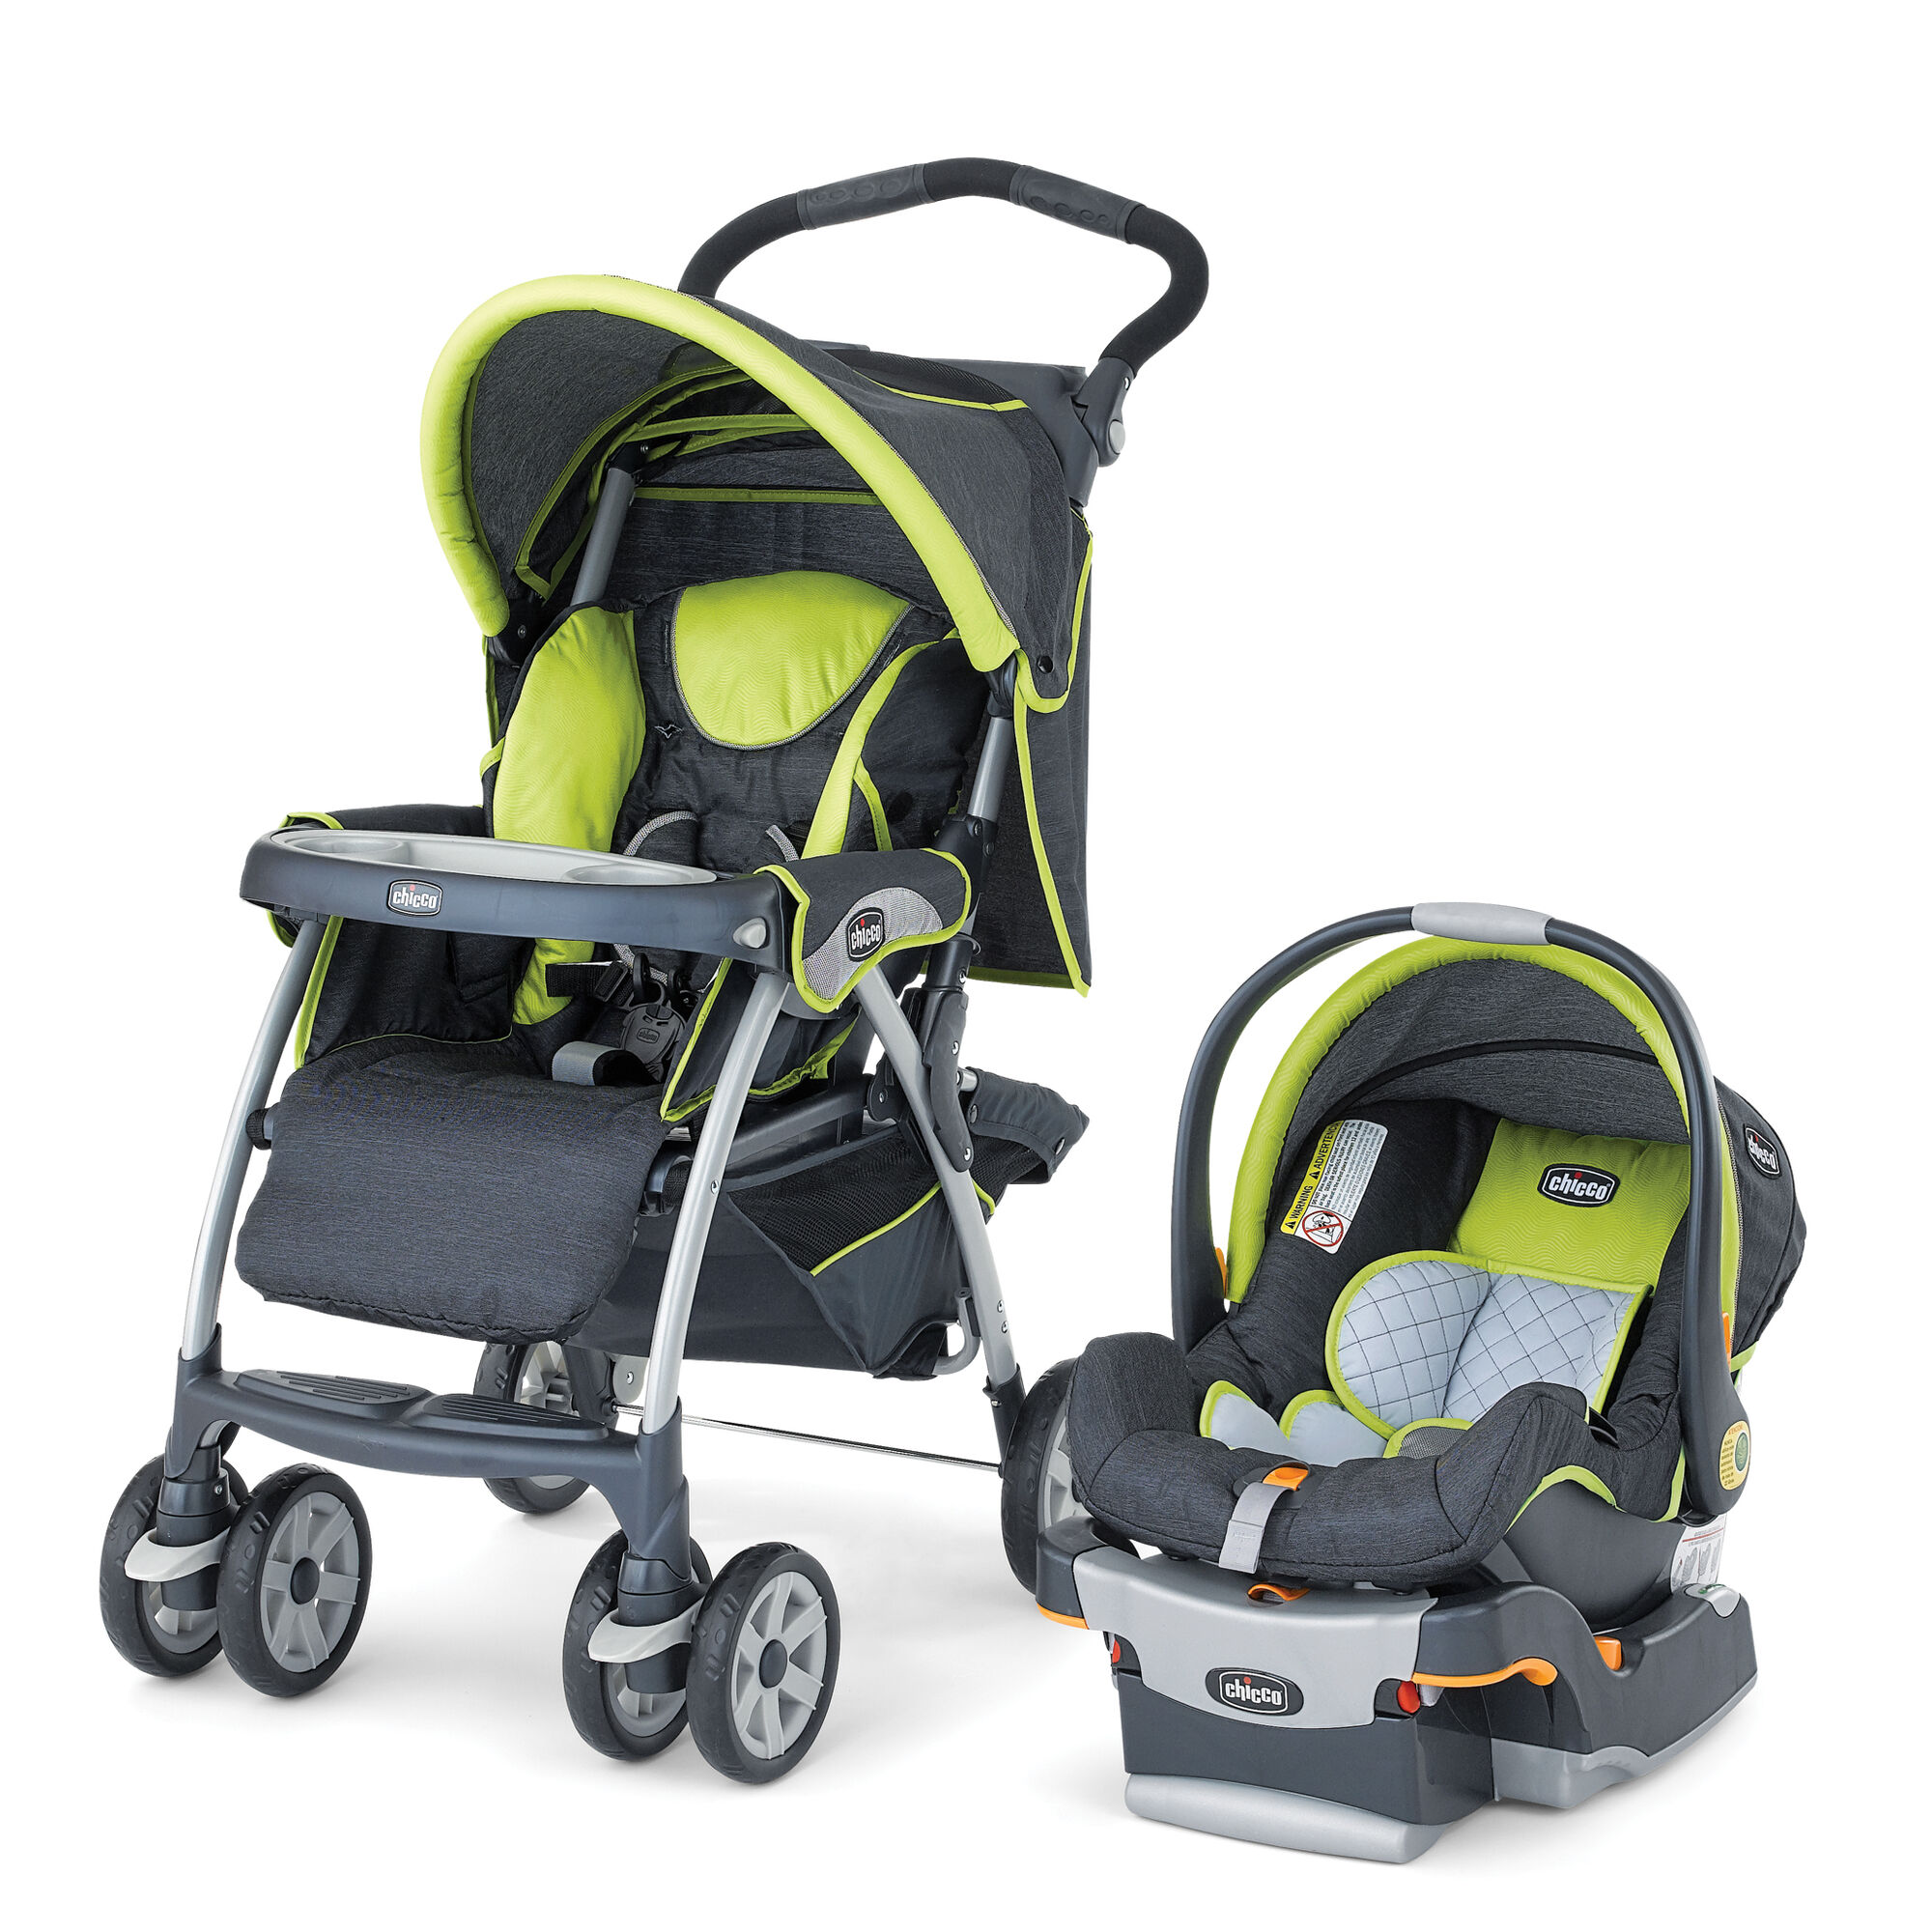 Graco stroller sale at Babies R Us Deana 02/06/18 Just in case anyone had their eye on a Graco Click Connect travel system stroller, they are $ off at Babies R Us for today and tomorrow only.